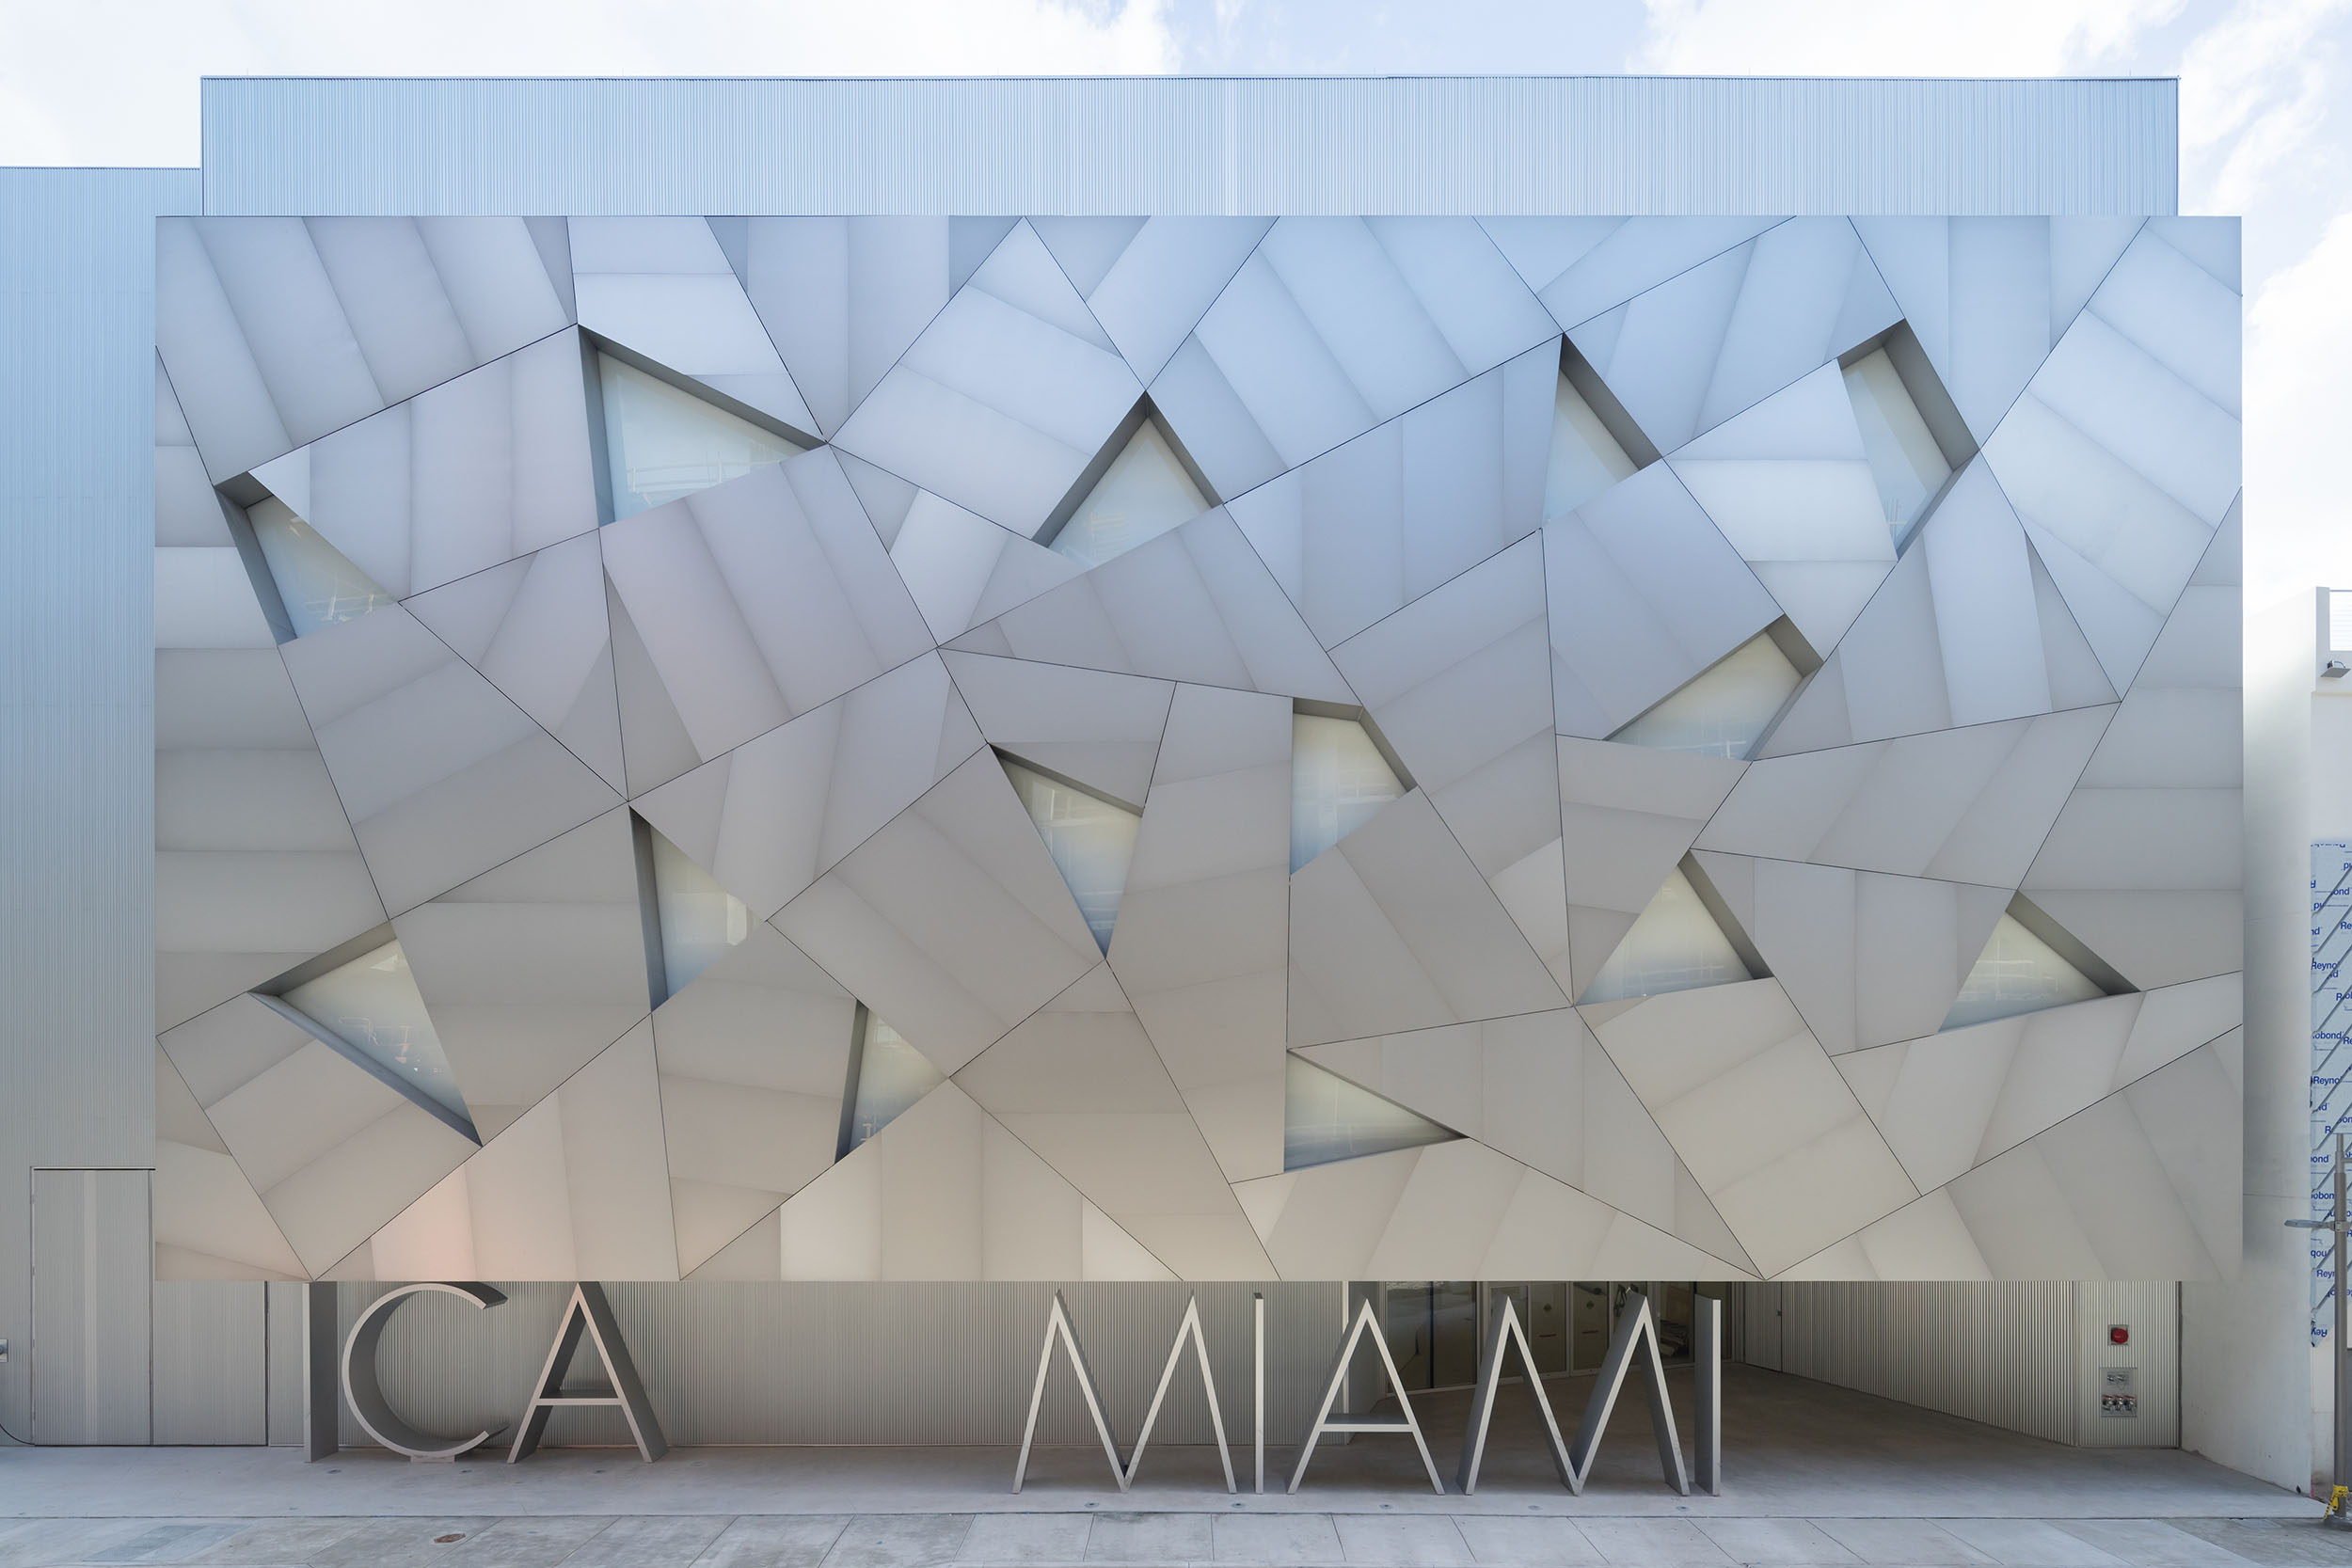 The Institute of Contemporary Art, Miami